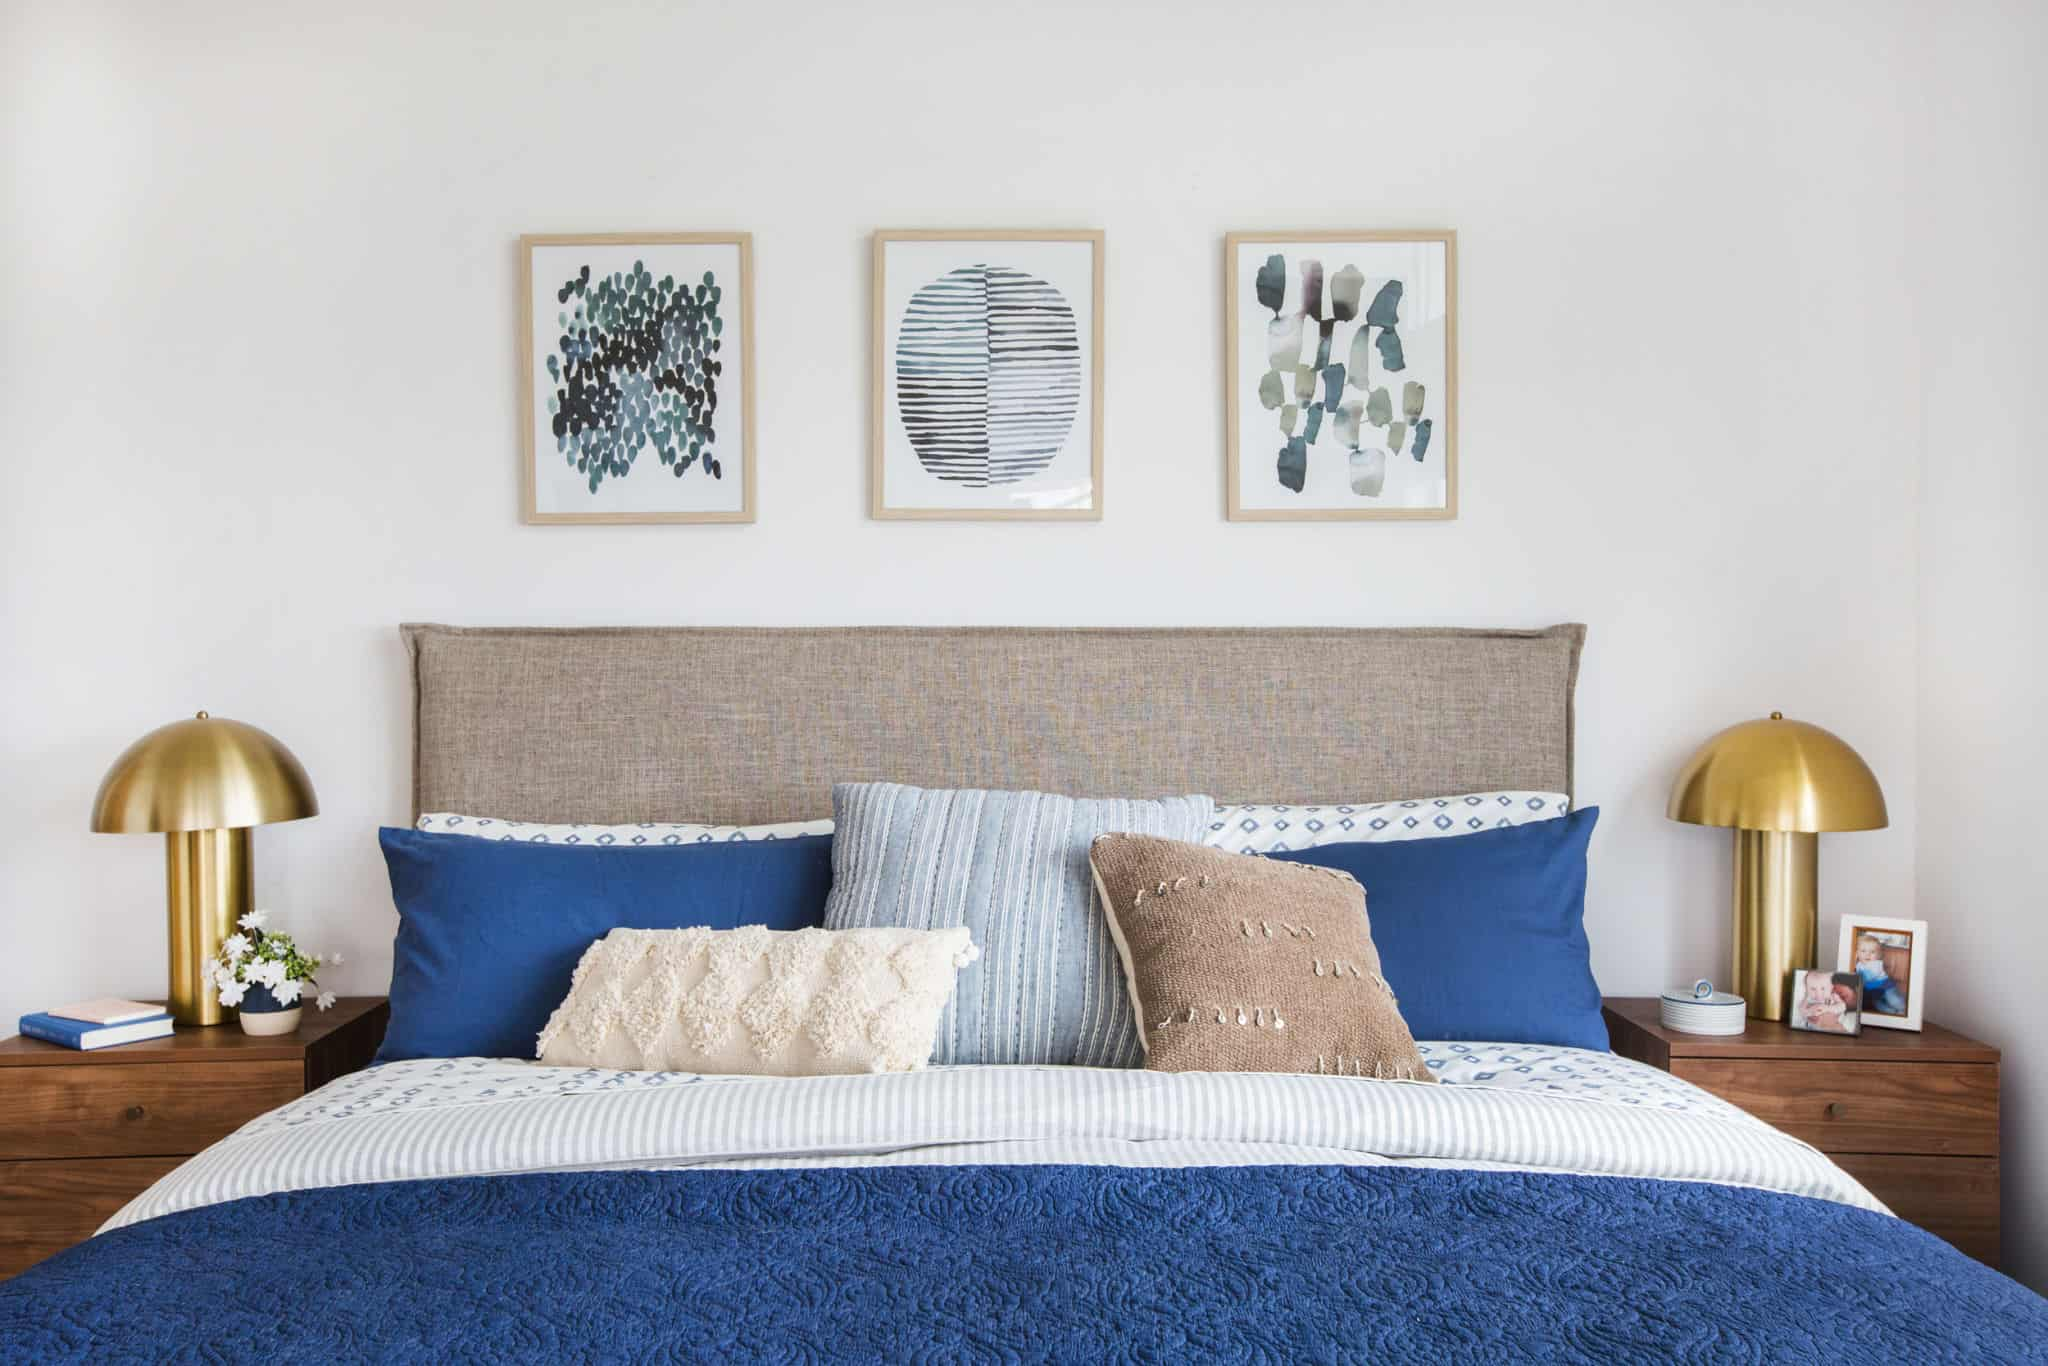 emily-henderson_master-bedroom_target_bedding_layered_light_texture_blue_white_brass_masculine_soft_4